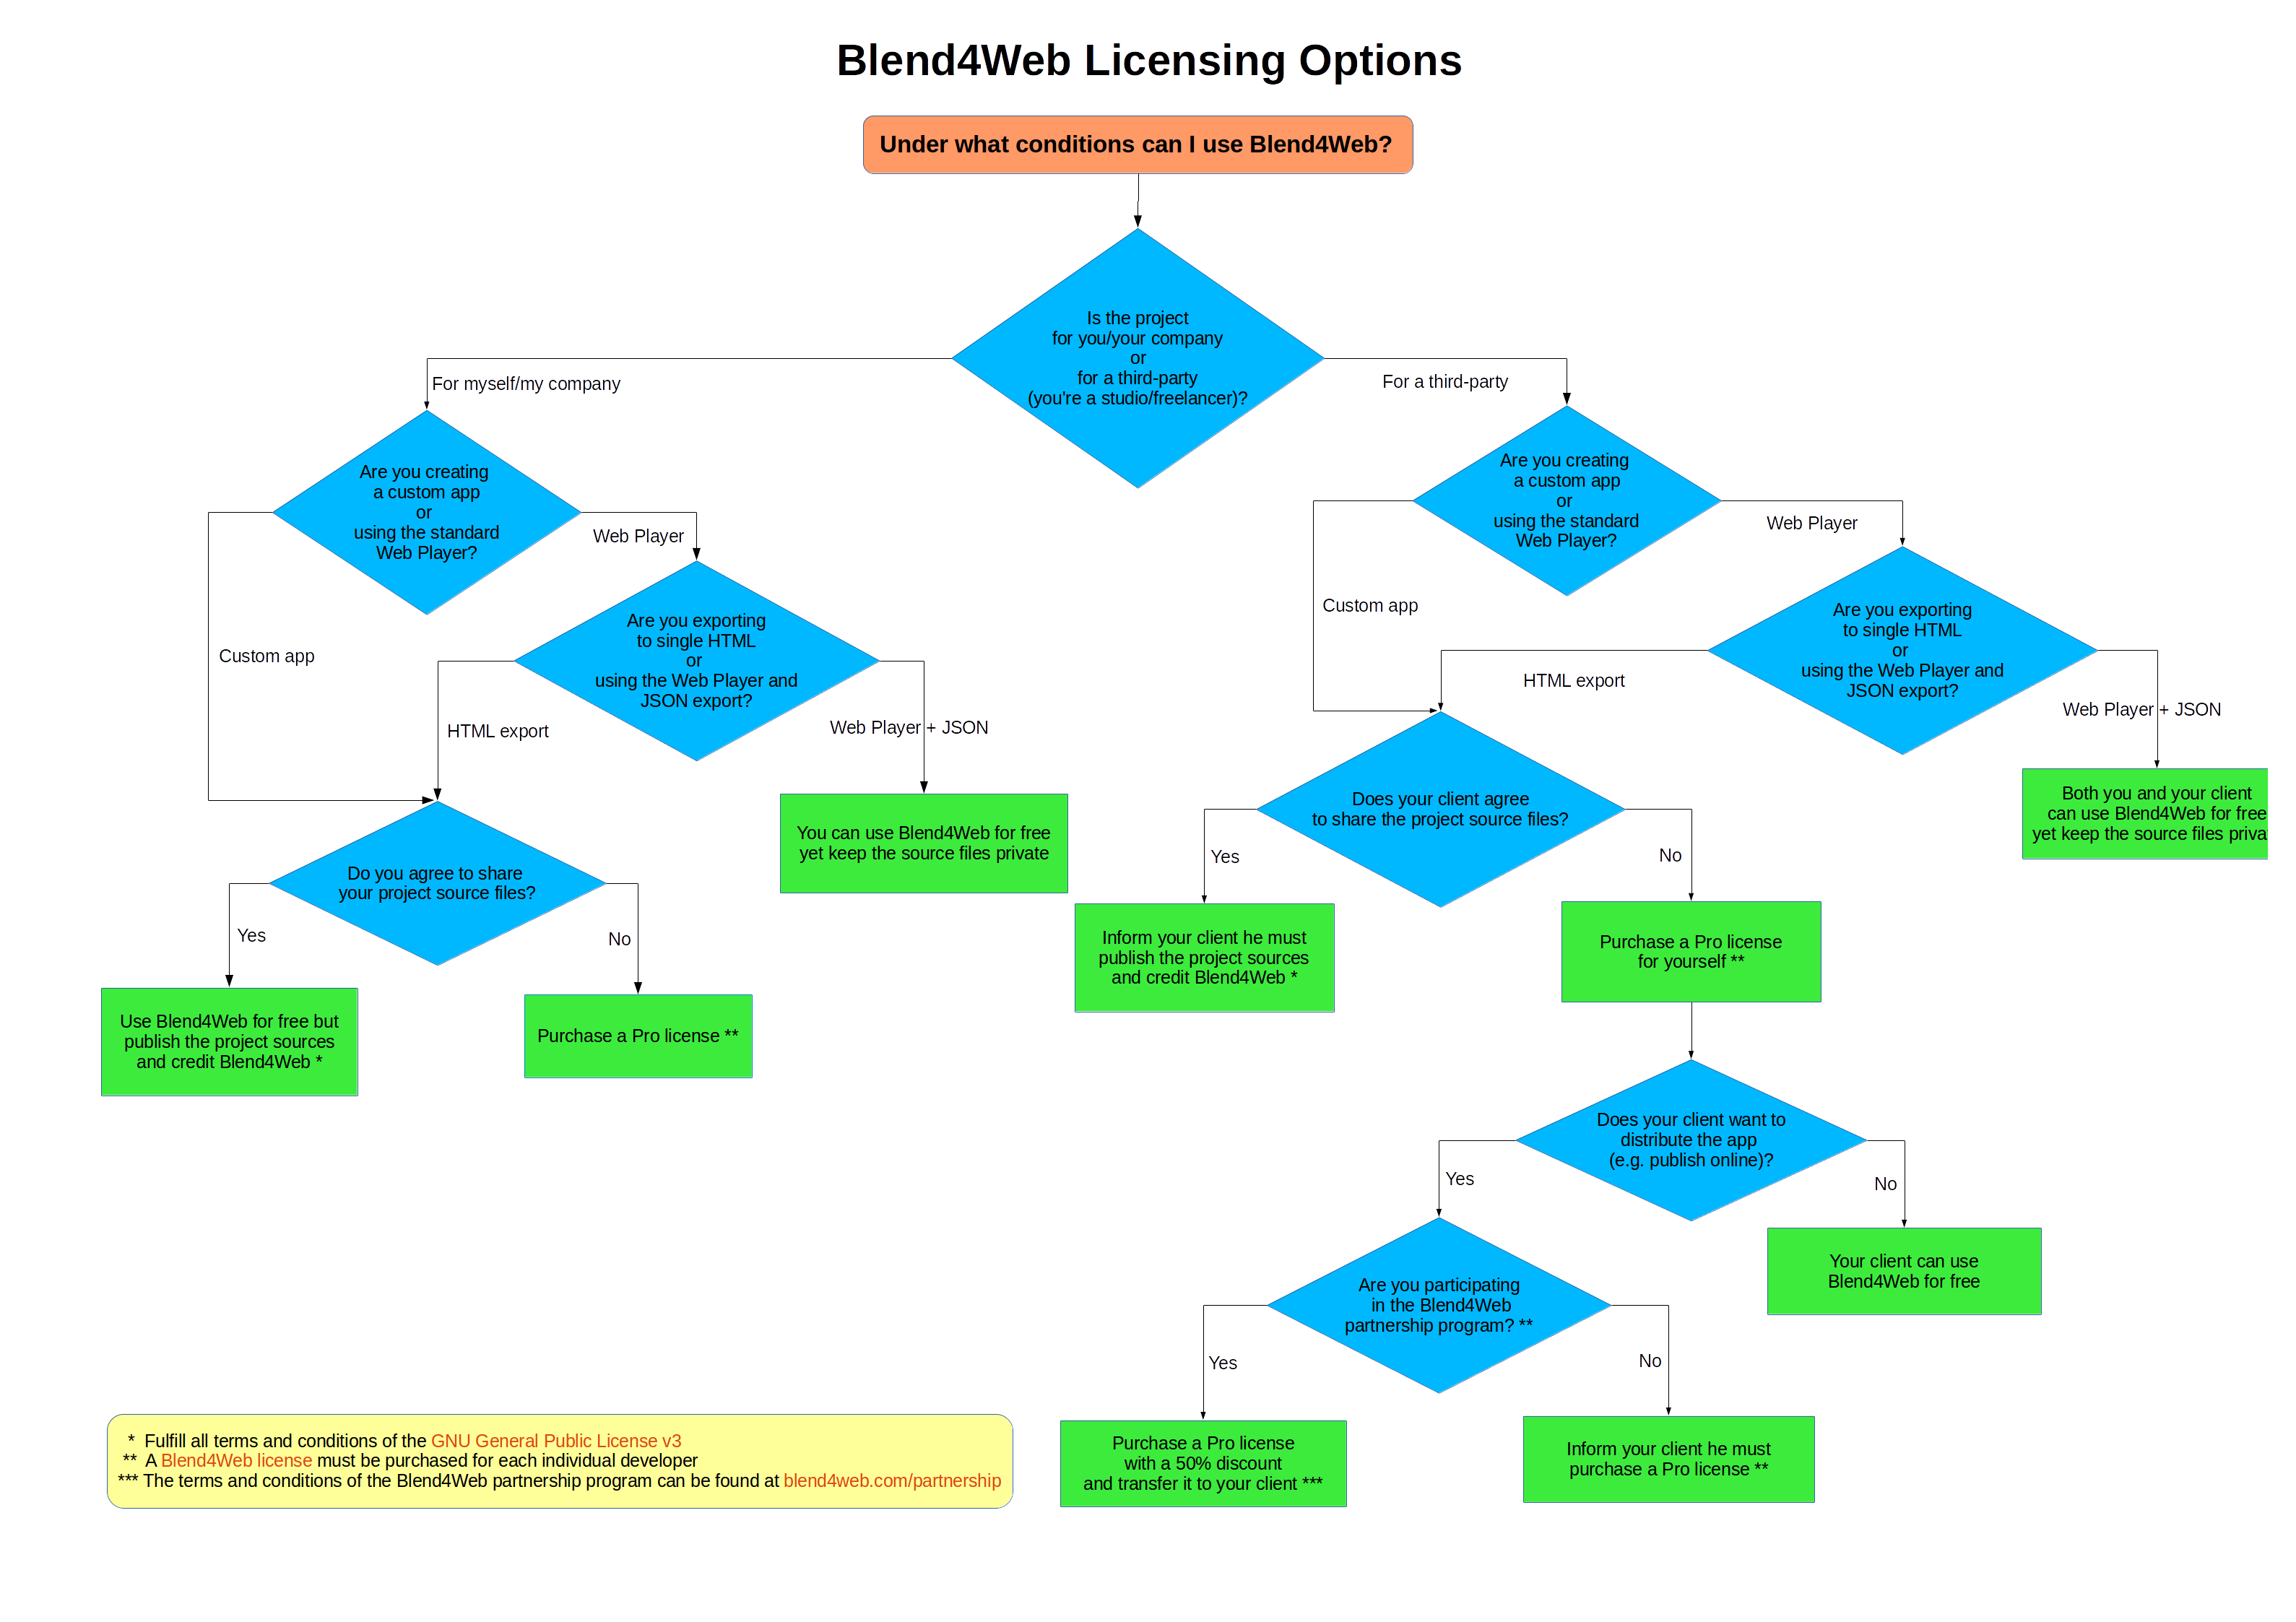 Flow chart blend4web licensing options blend4web here is a flow chart depicting all licensing options available to blend4web users pdf version is here we welcome your feedback nvjuhfo Image collections